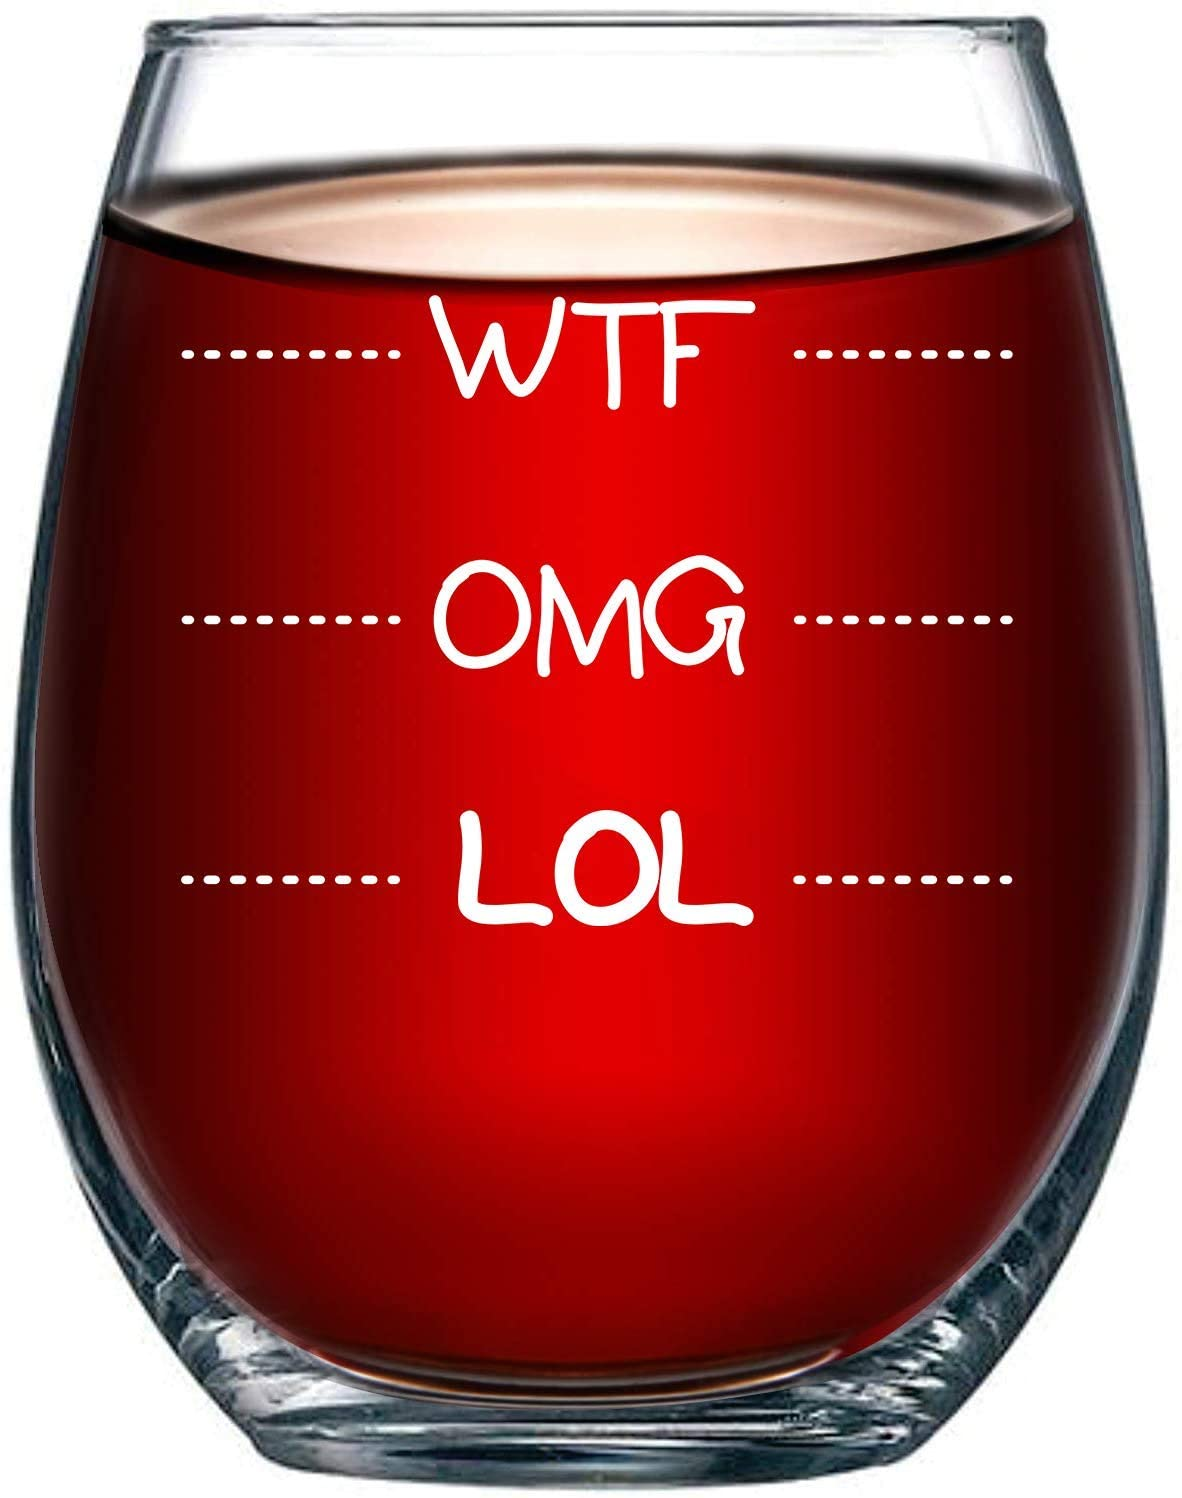 LOL-OMG-WTF Funny Wine Glass for Every Mood, Laugh Out Loud, Oh My God, What the F, Novelty Present 15oz